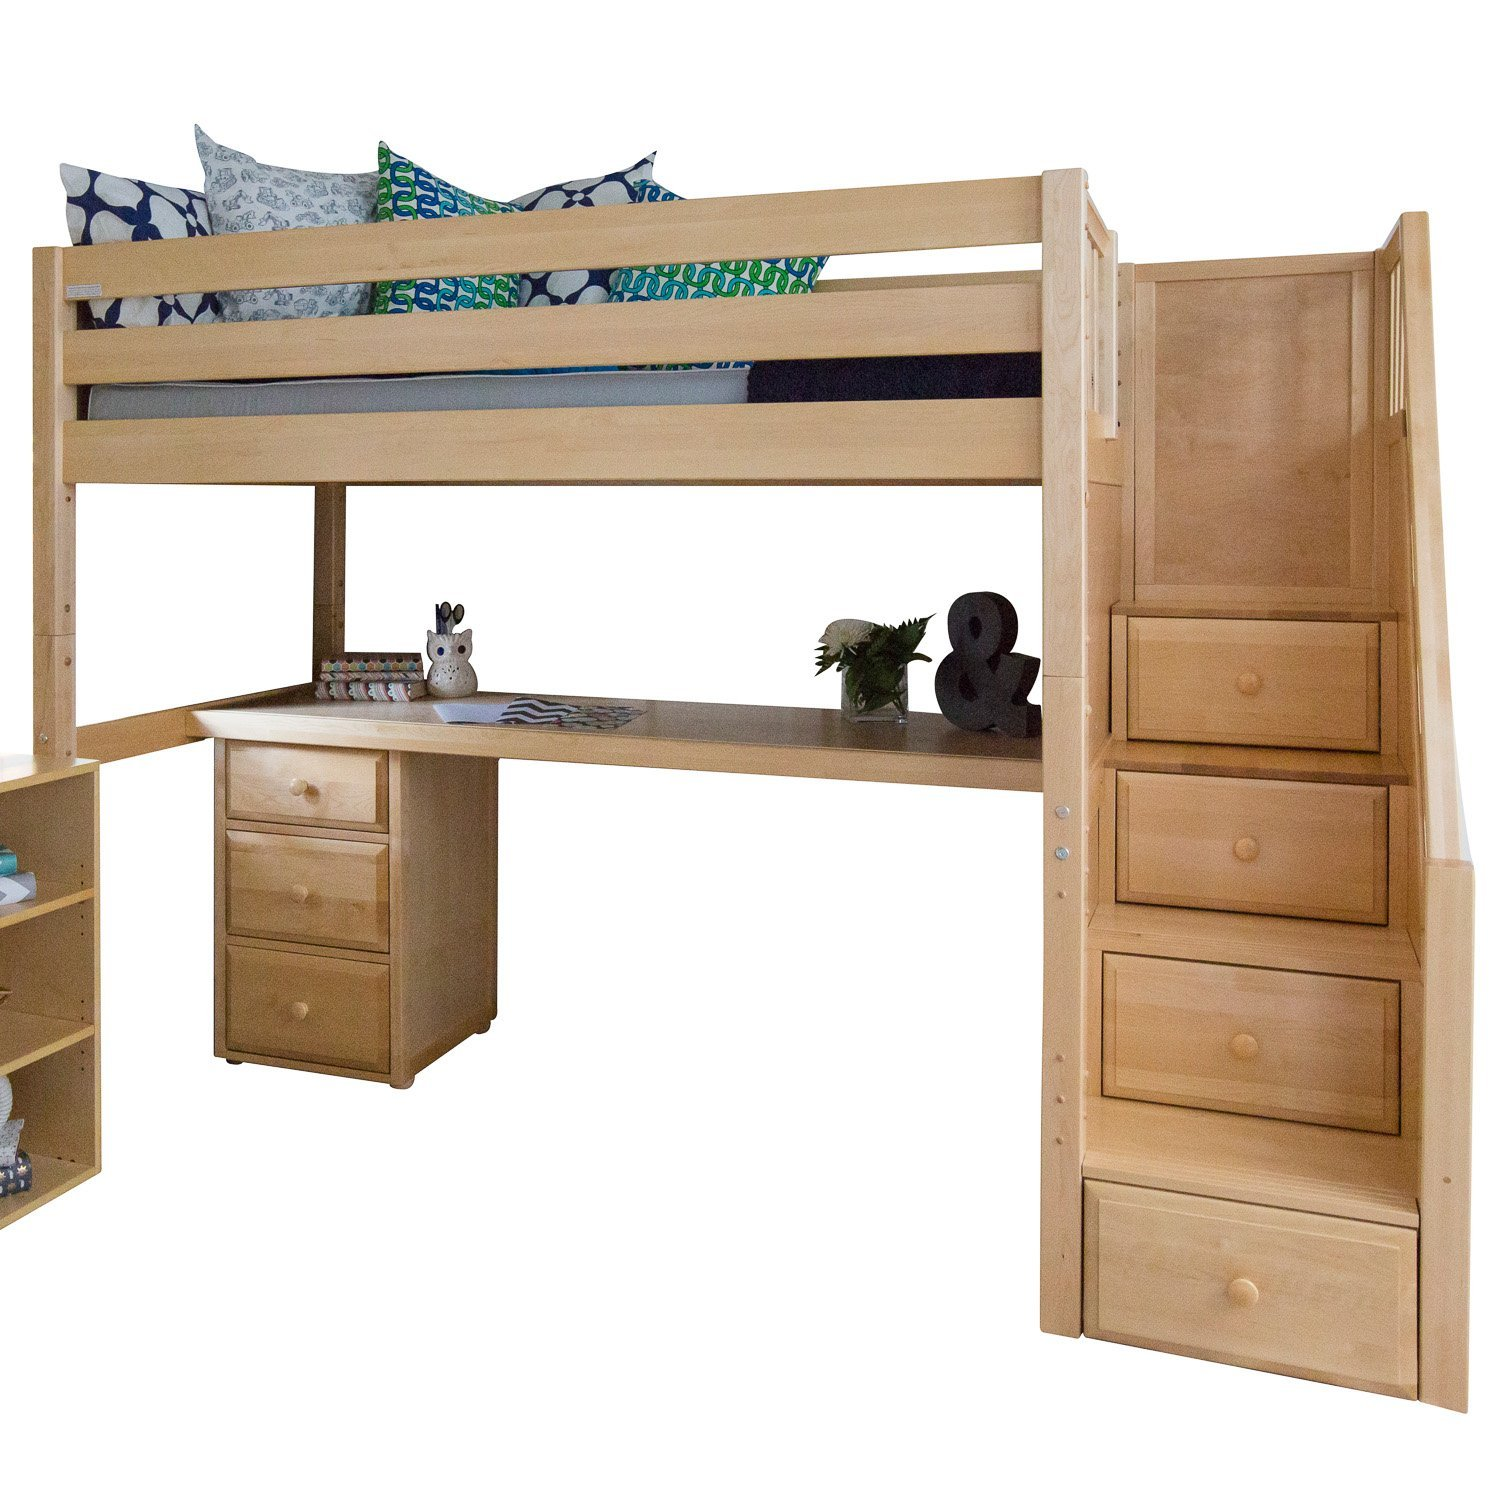 Maxtrix Solid Hardwood Twin-Size Low Loft Bed with Storage Staircase Entry, Integrated Desk, and 3 1/2 Drawer Dresser, Natural